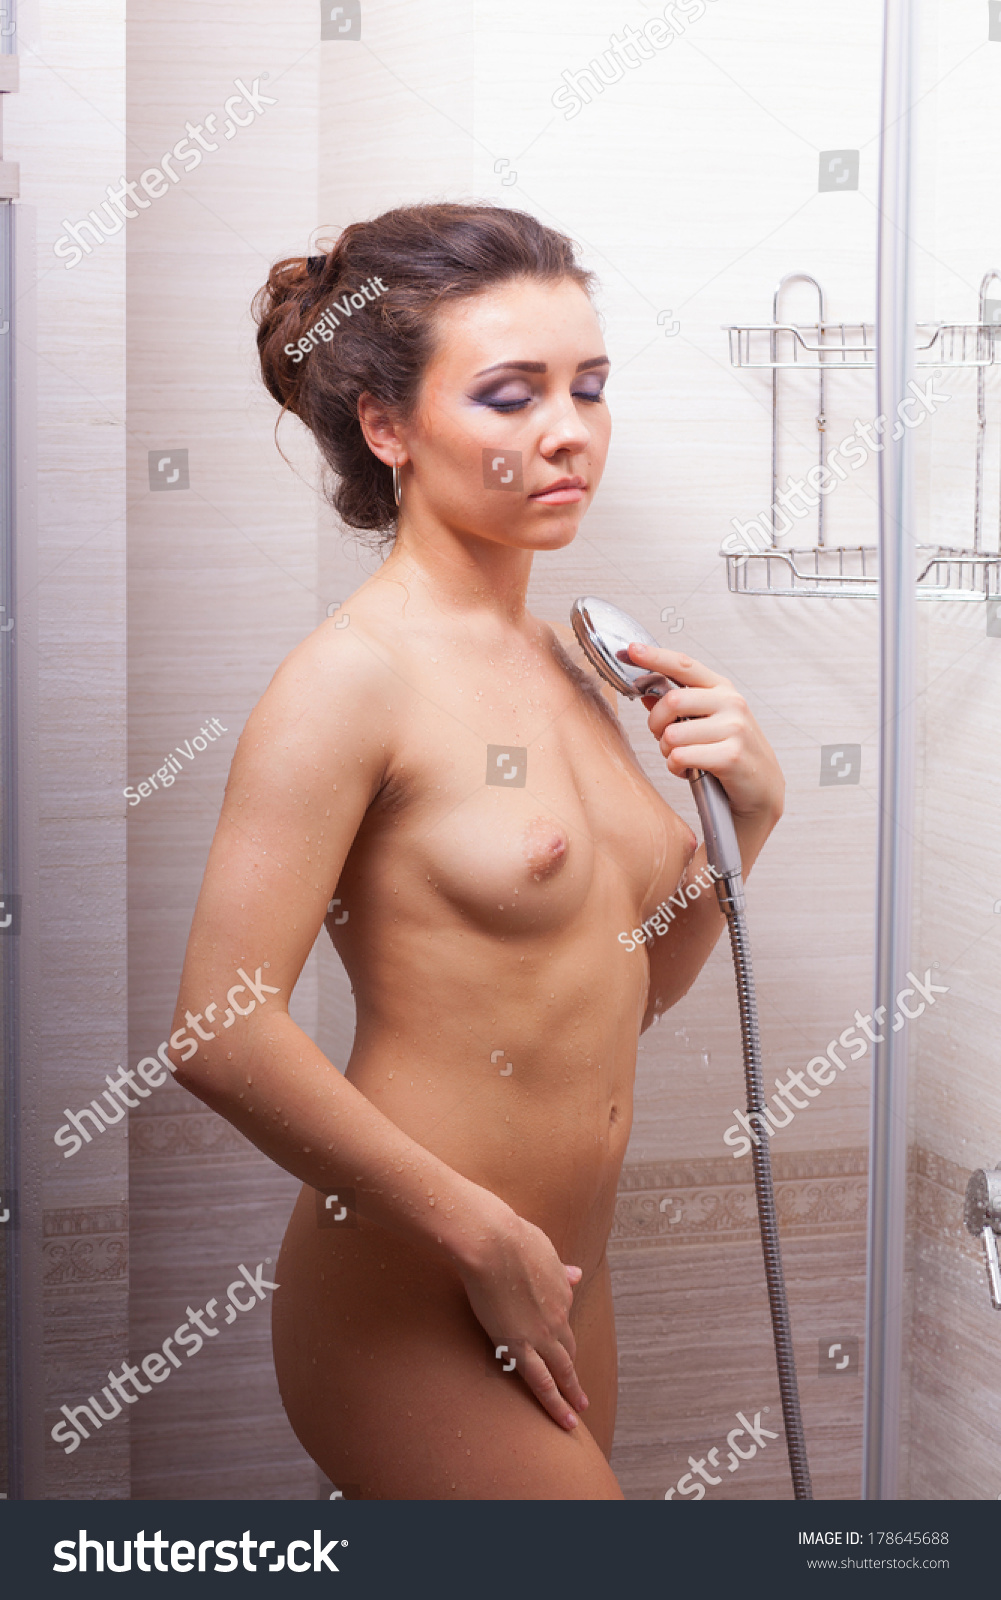 Girls naked taking a shower